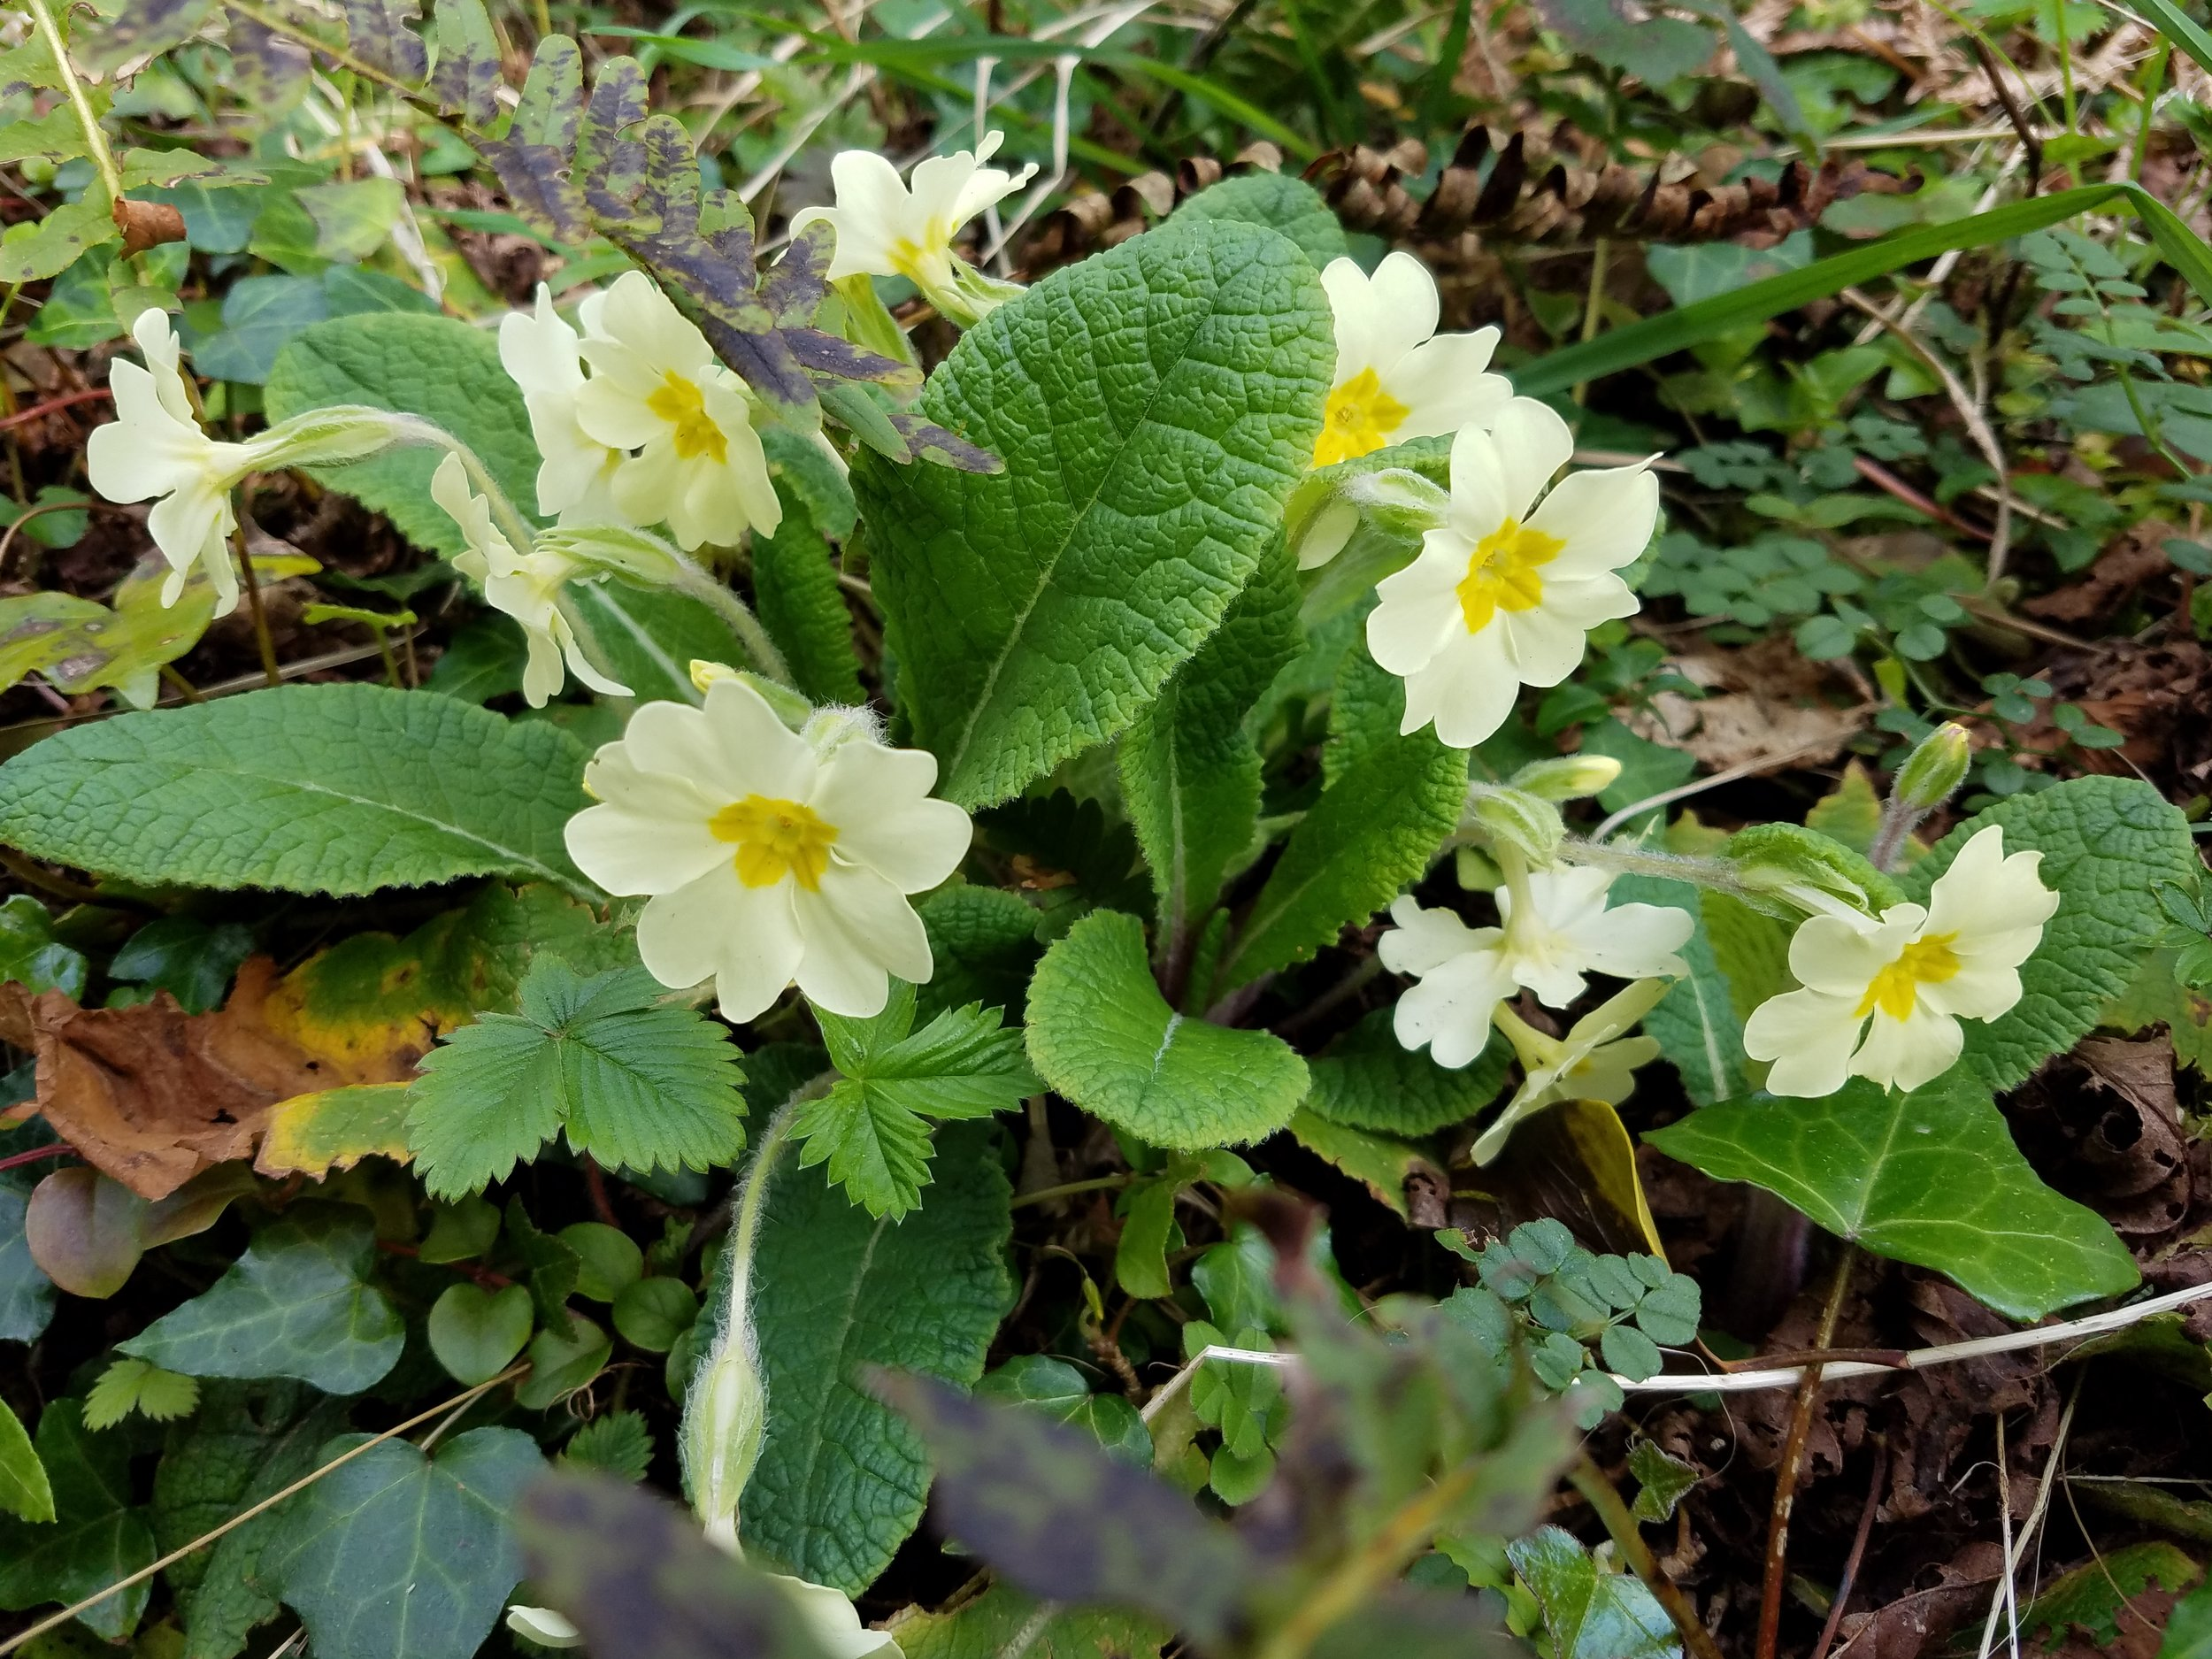 Primroses flowering atop a stone wall.